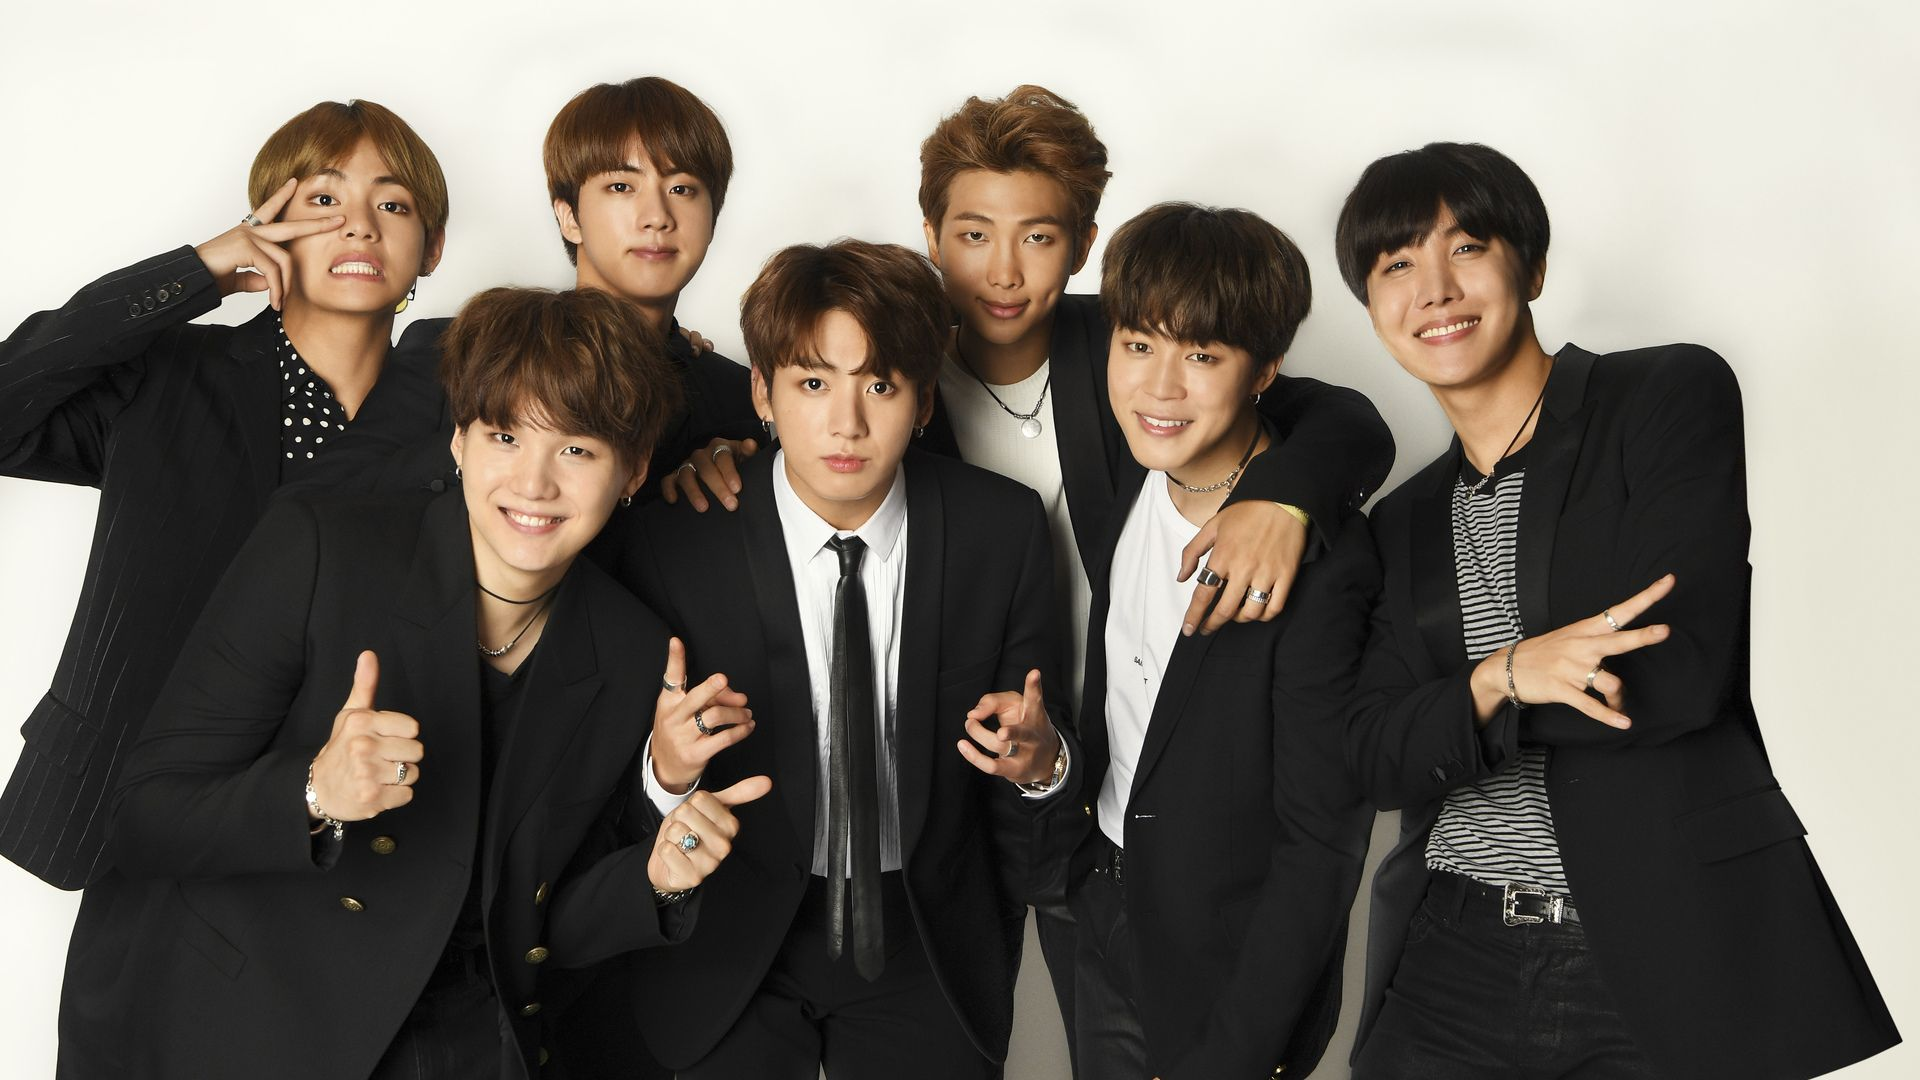 BTS Wallpaper 05 1920 x 1080